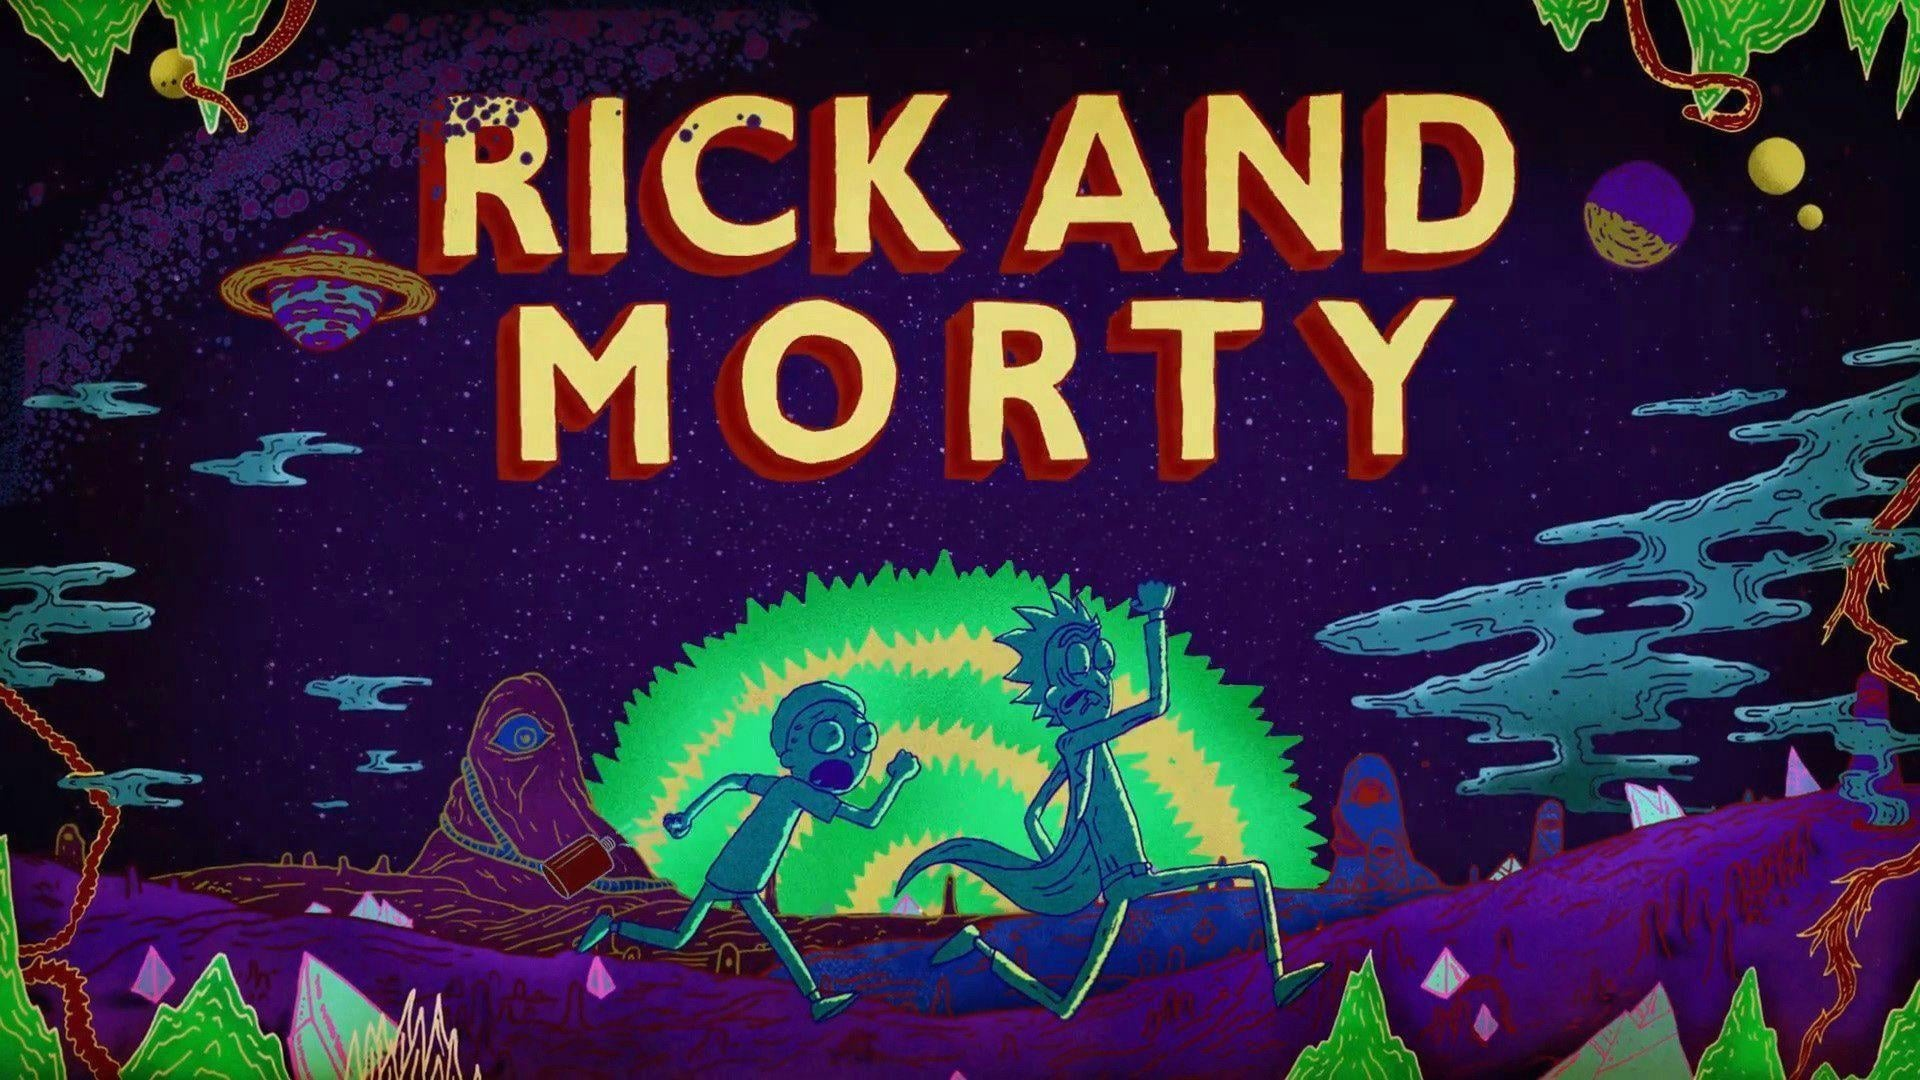 Rick and Morty - Season 0 Episode 18 : Rick and Morty The Non-Canonical Halloween Adventures